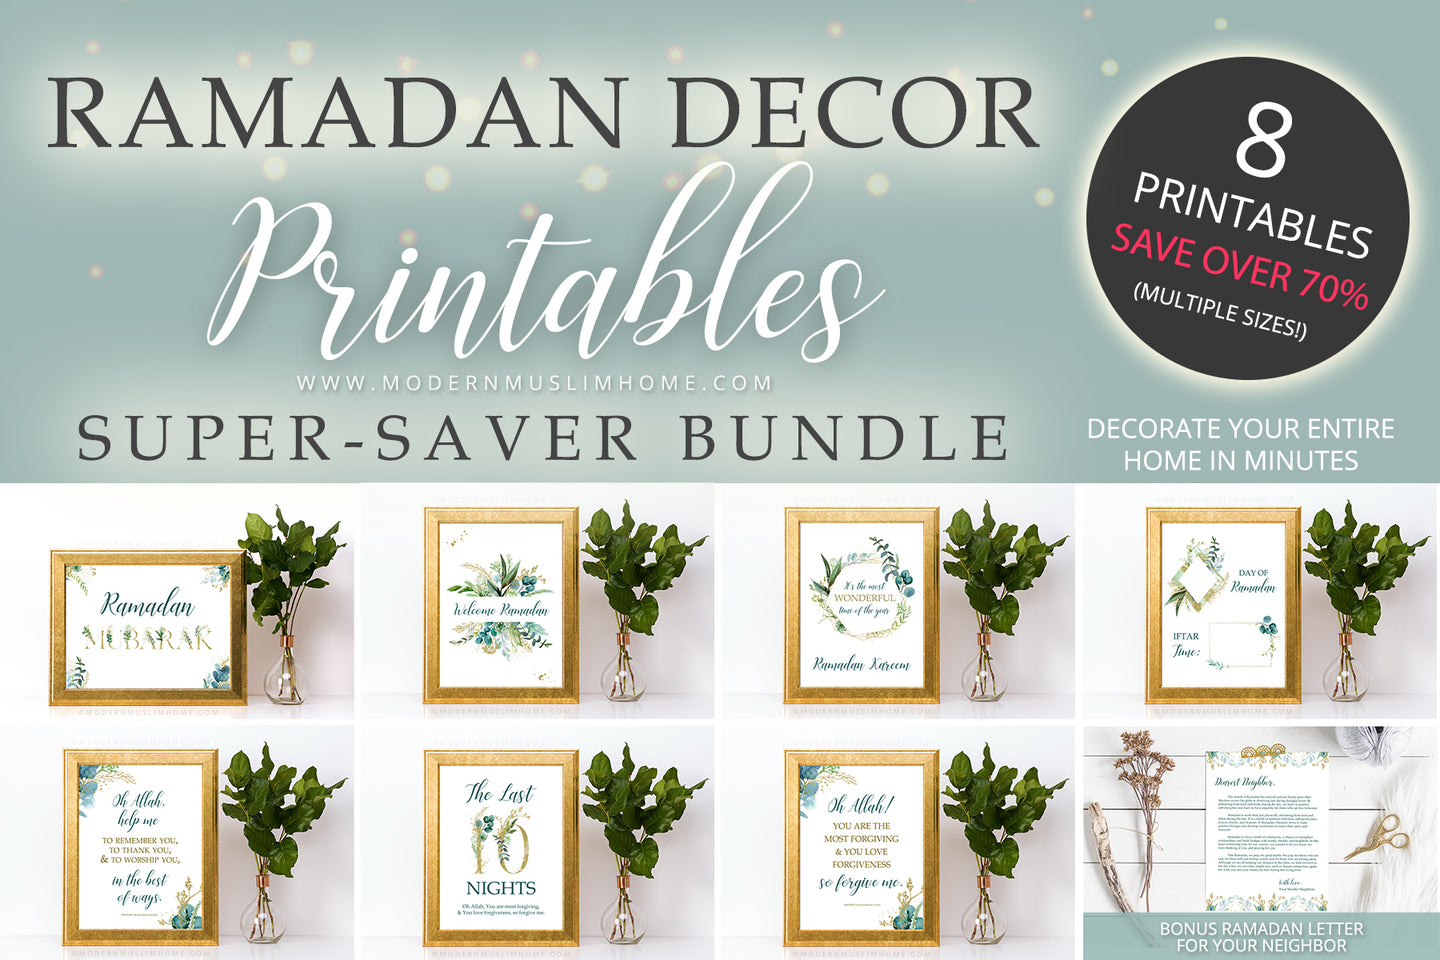 This is, without a doubt, the easiest and quickest way to decorate your home for Ramadan. This bundle includes almost ALL of our Ramadan Decor Printables for a stunning and cohesive look throughout your home. Simply download, print, and frame (or use however you wish)! This bundle is a limited-time offer, saving you more than 70% off.